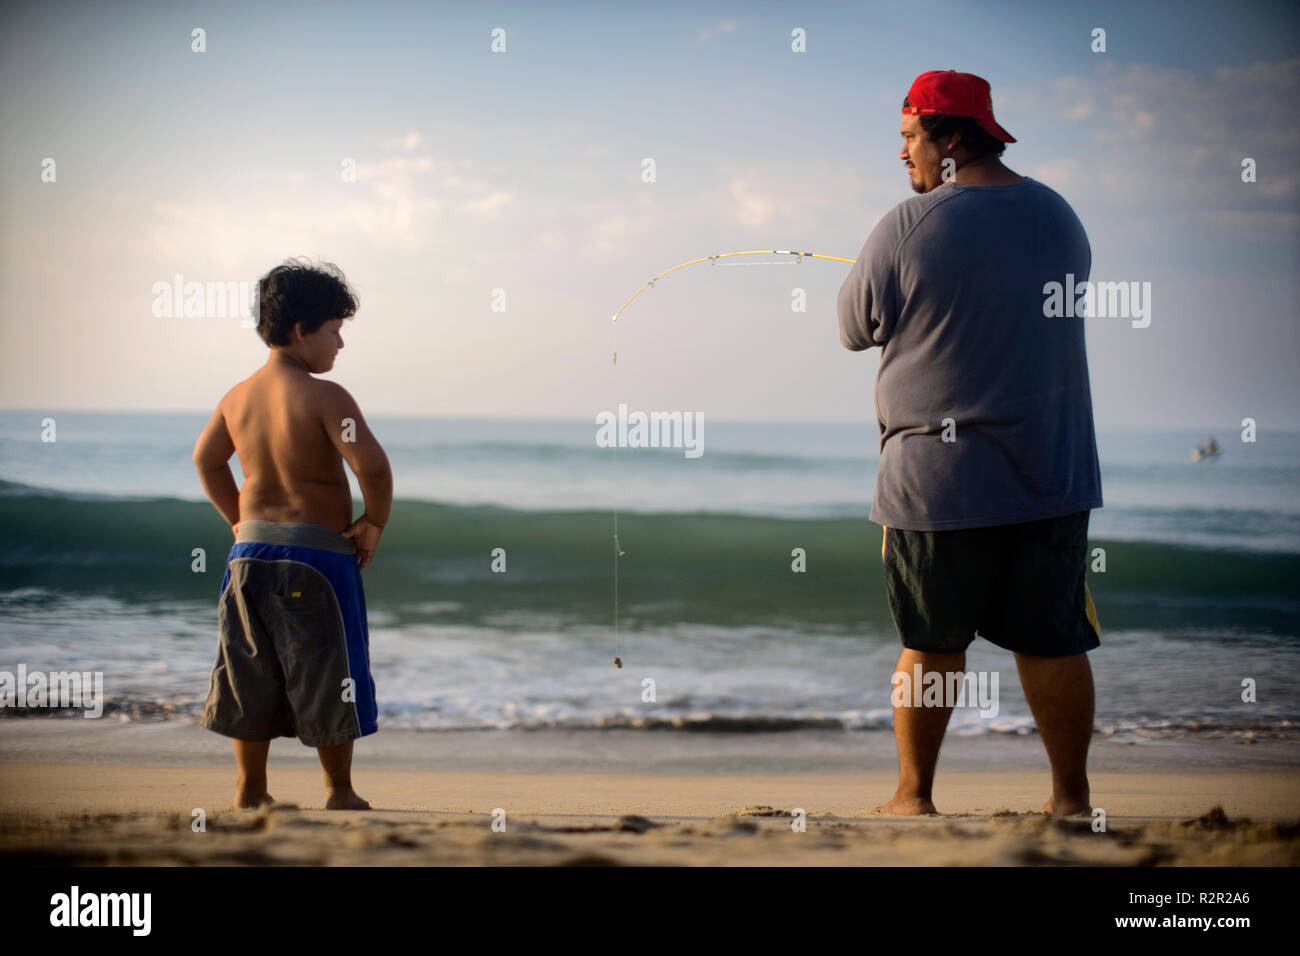 Rear view of a man fishing near the seashore while a small boy looks at him. - Stock Image